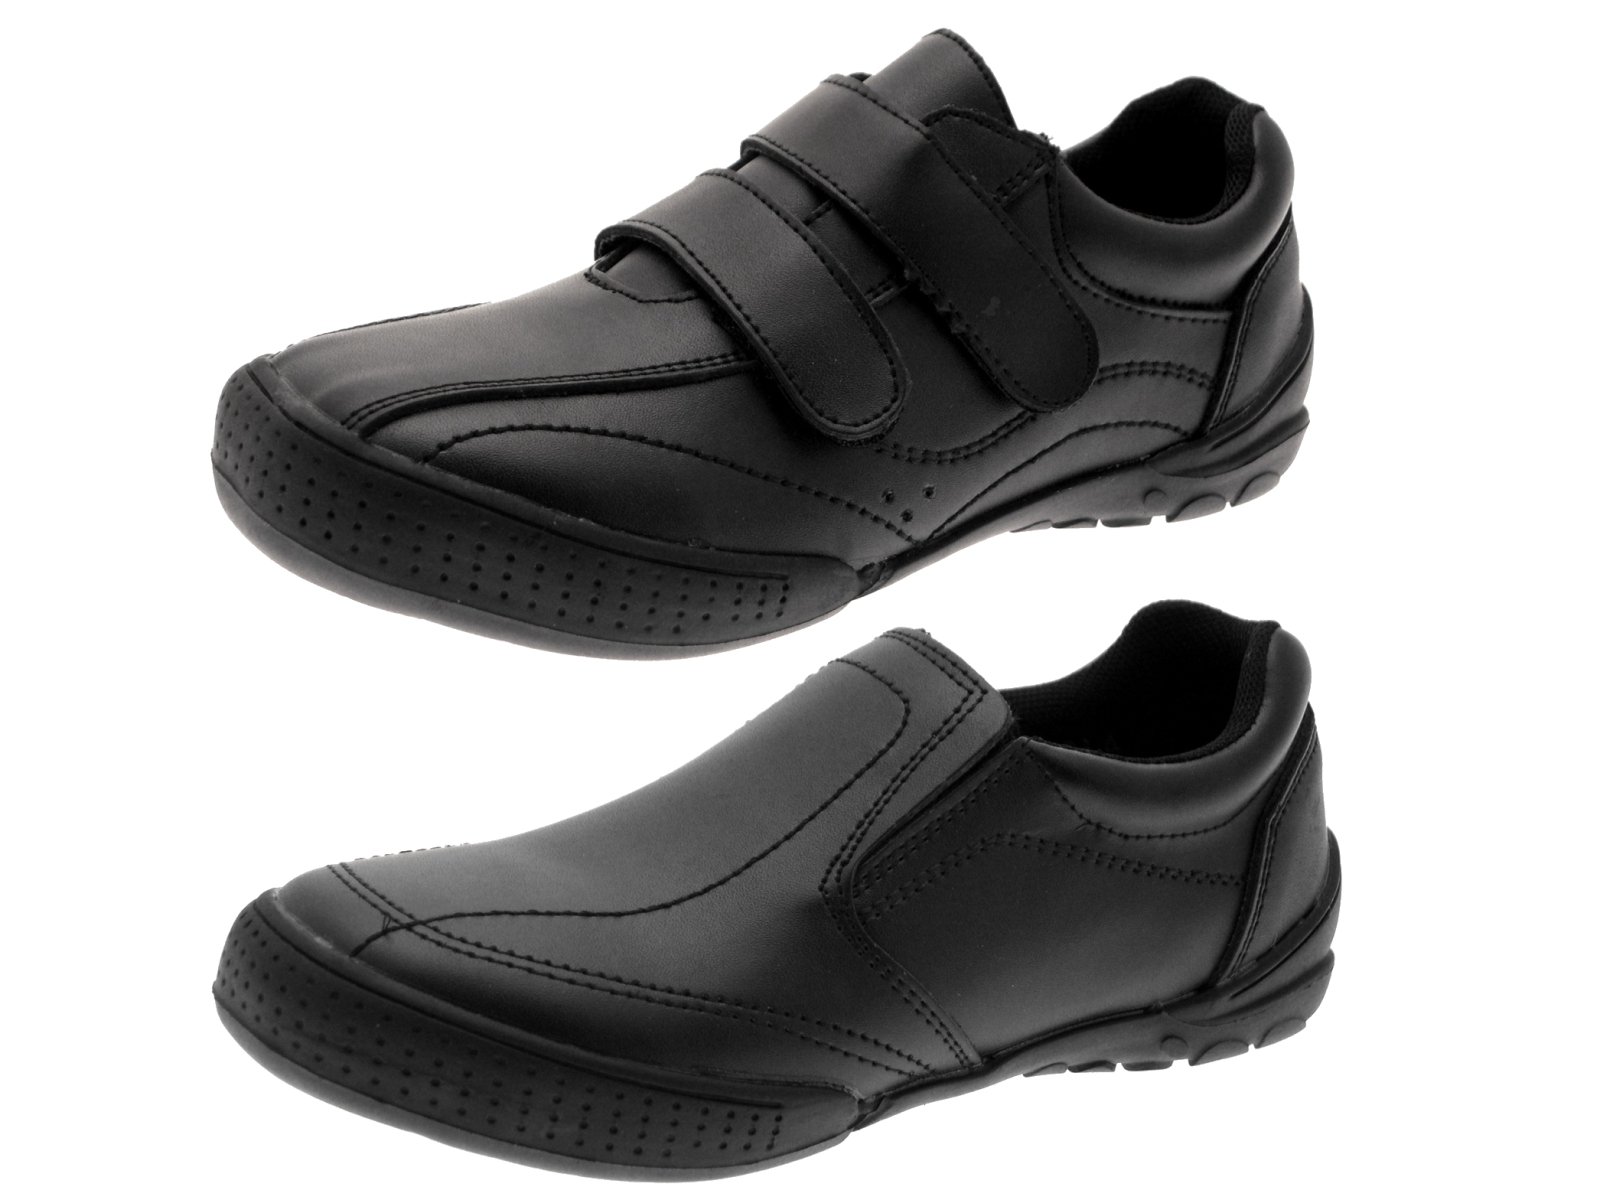 boys black leather school shoes flat slip on formal